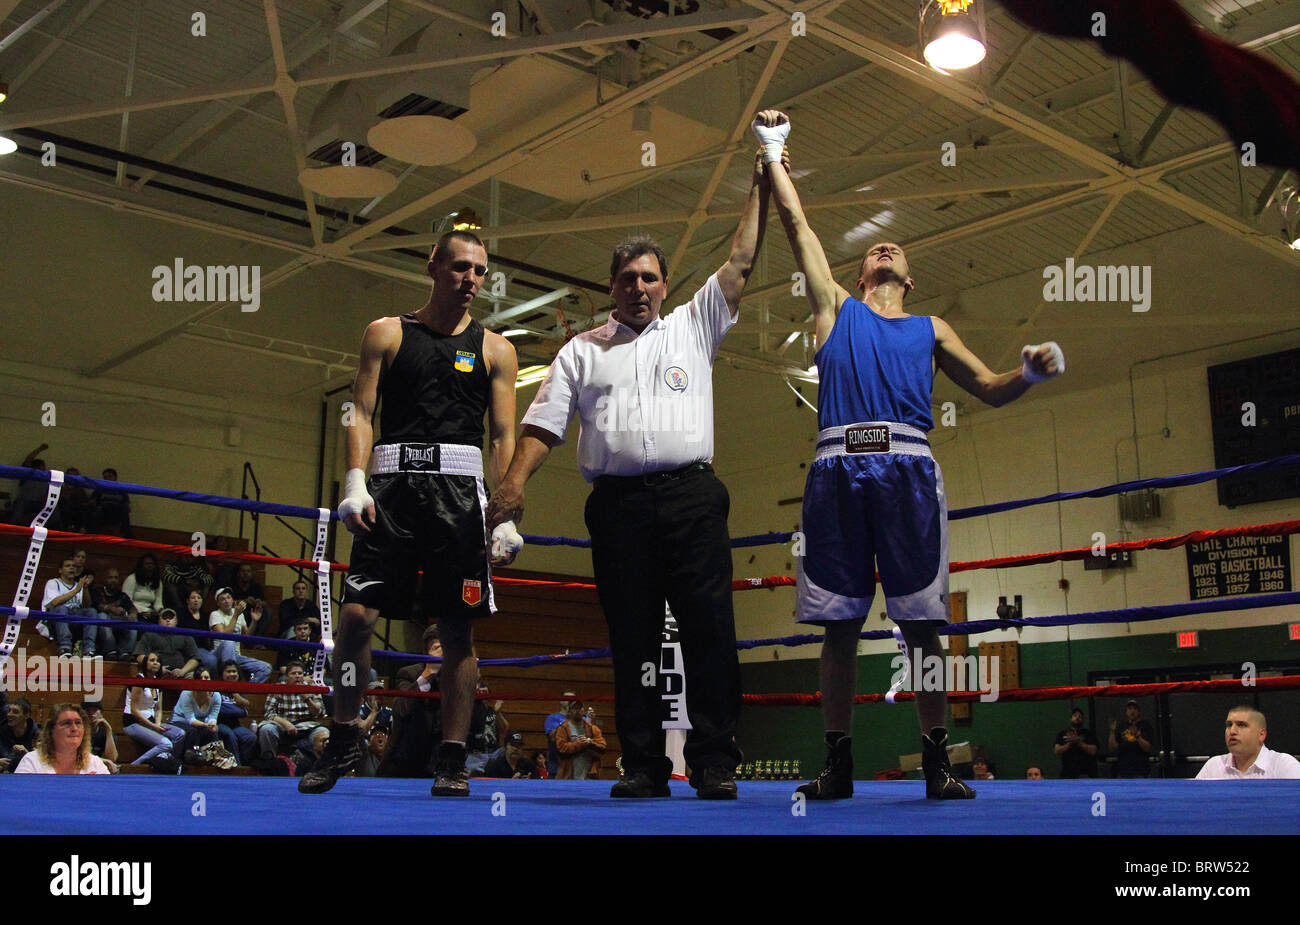 Boxing referee holds up winning boxer's arm in the ring after a boxing match - Stock Image